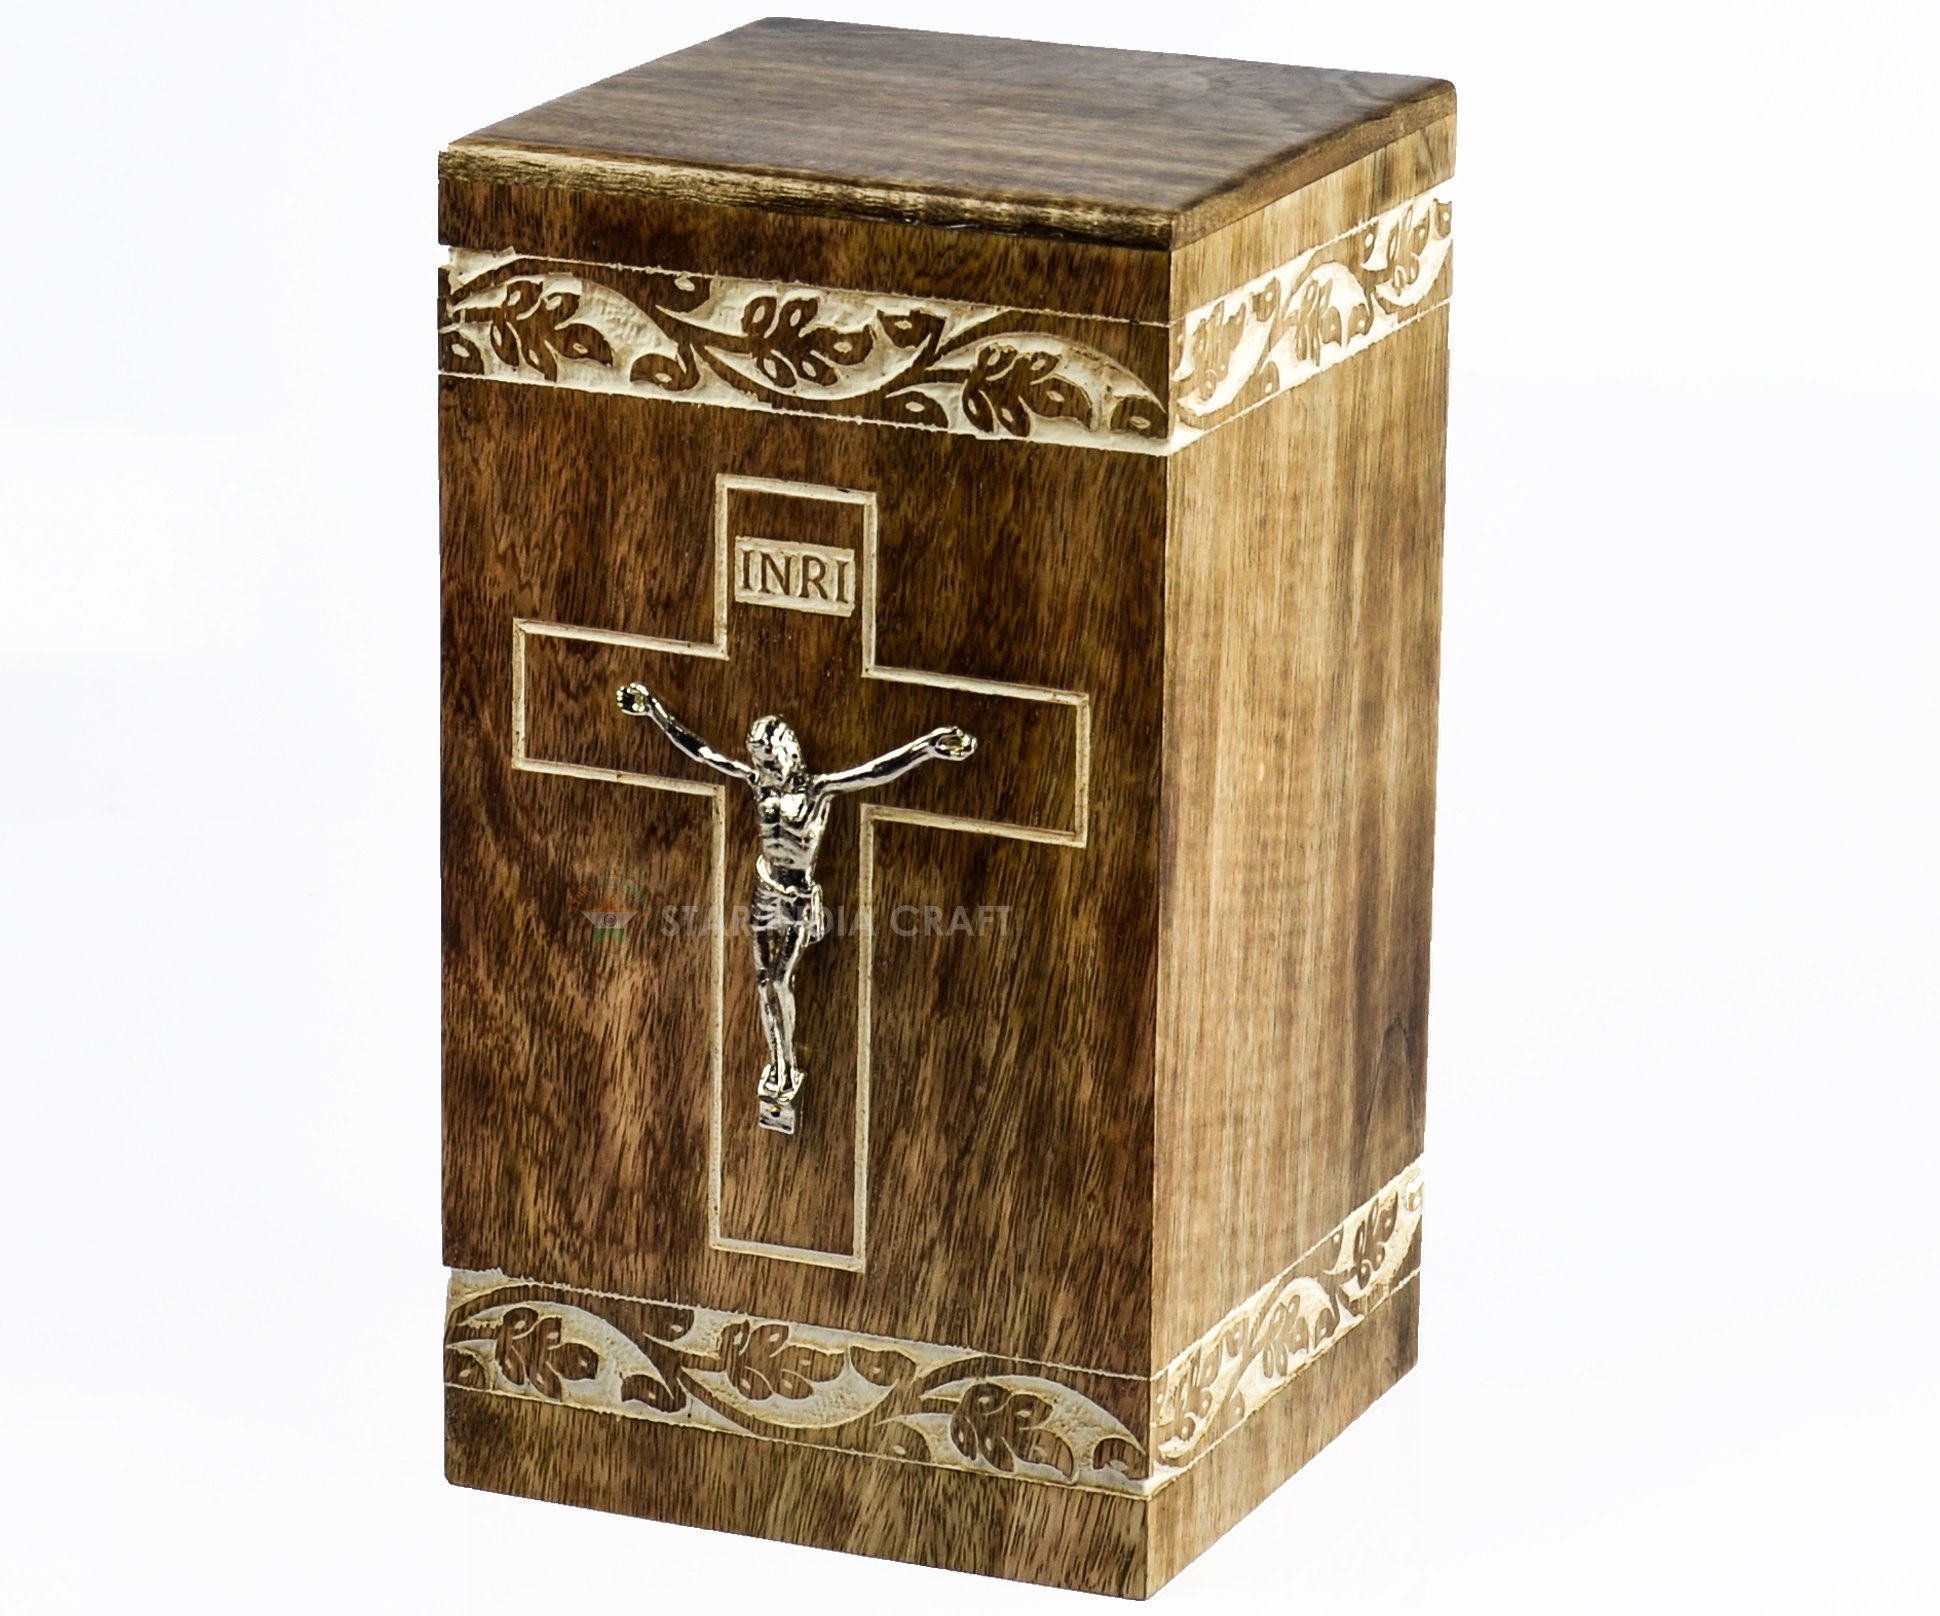 Cross Engraved Rosewood Urns for Human Ashes Adult By STAR INDIA CRAFT,Handmade Cremation Funeral Urn for Ashes,A perfect Burial Wooden Box for your Loved Ones (Cross-21, 11.25x6.25x6.25-250 Cu/In)